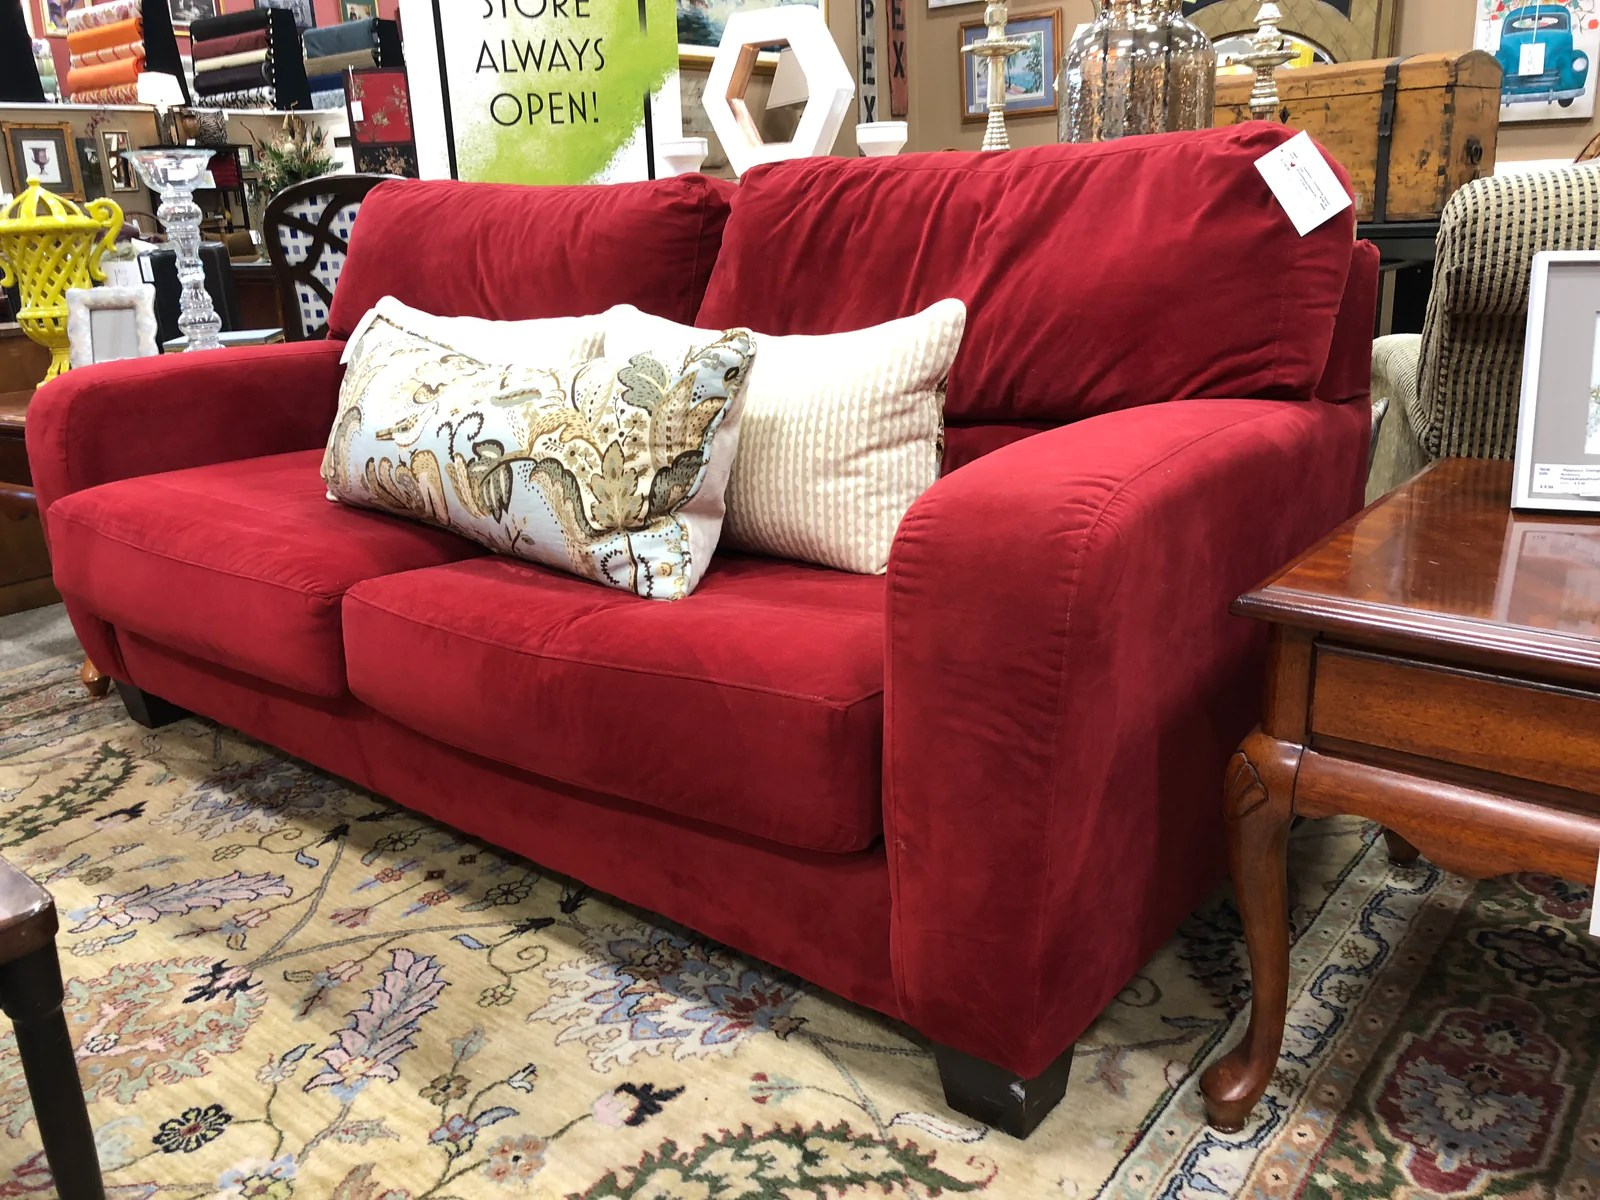 broyhill sleeper sofa best way to clean faux leather queen petersons consigning design